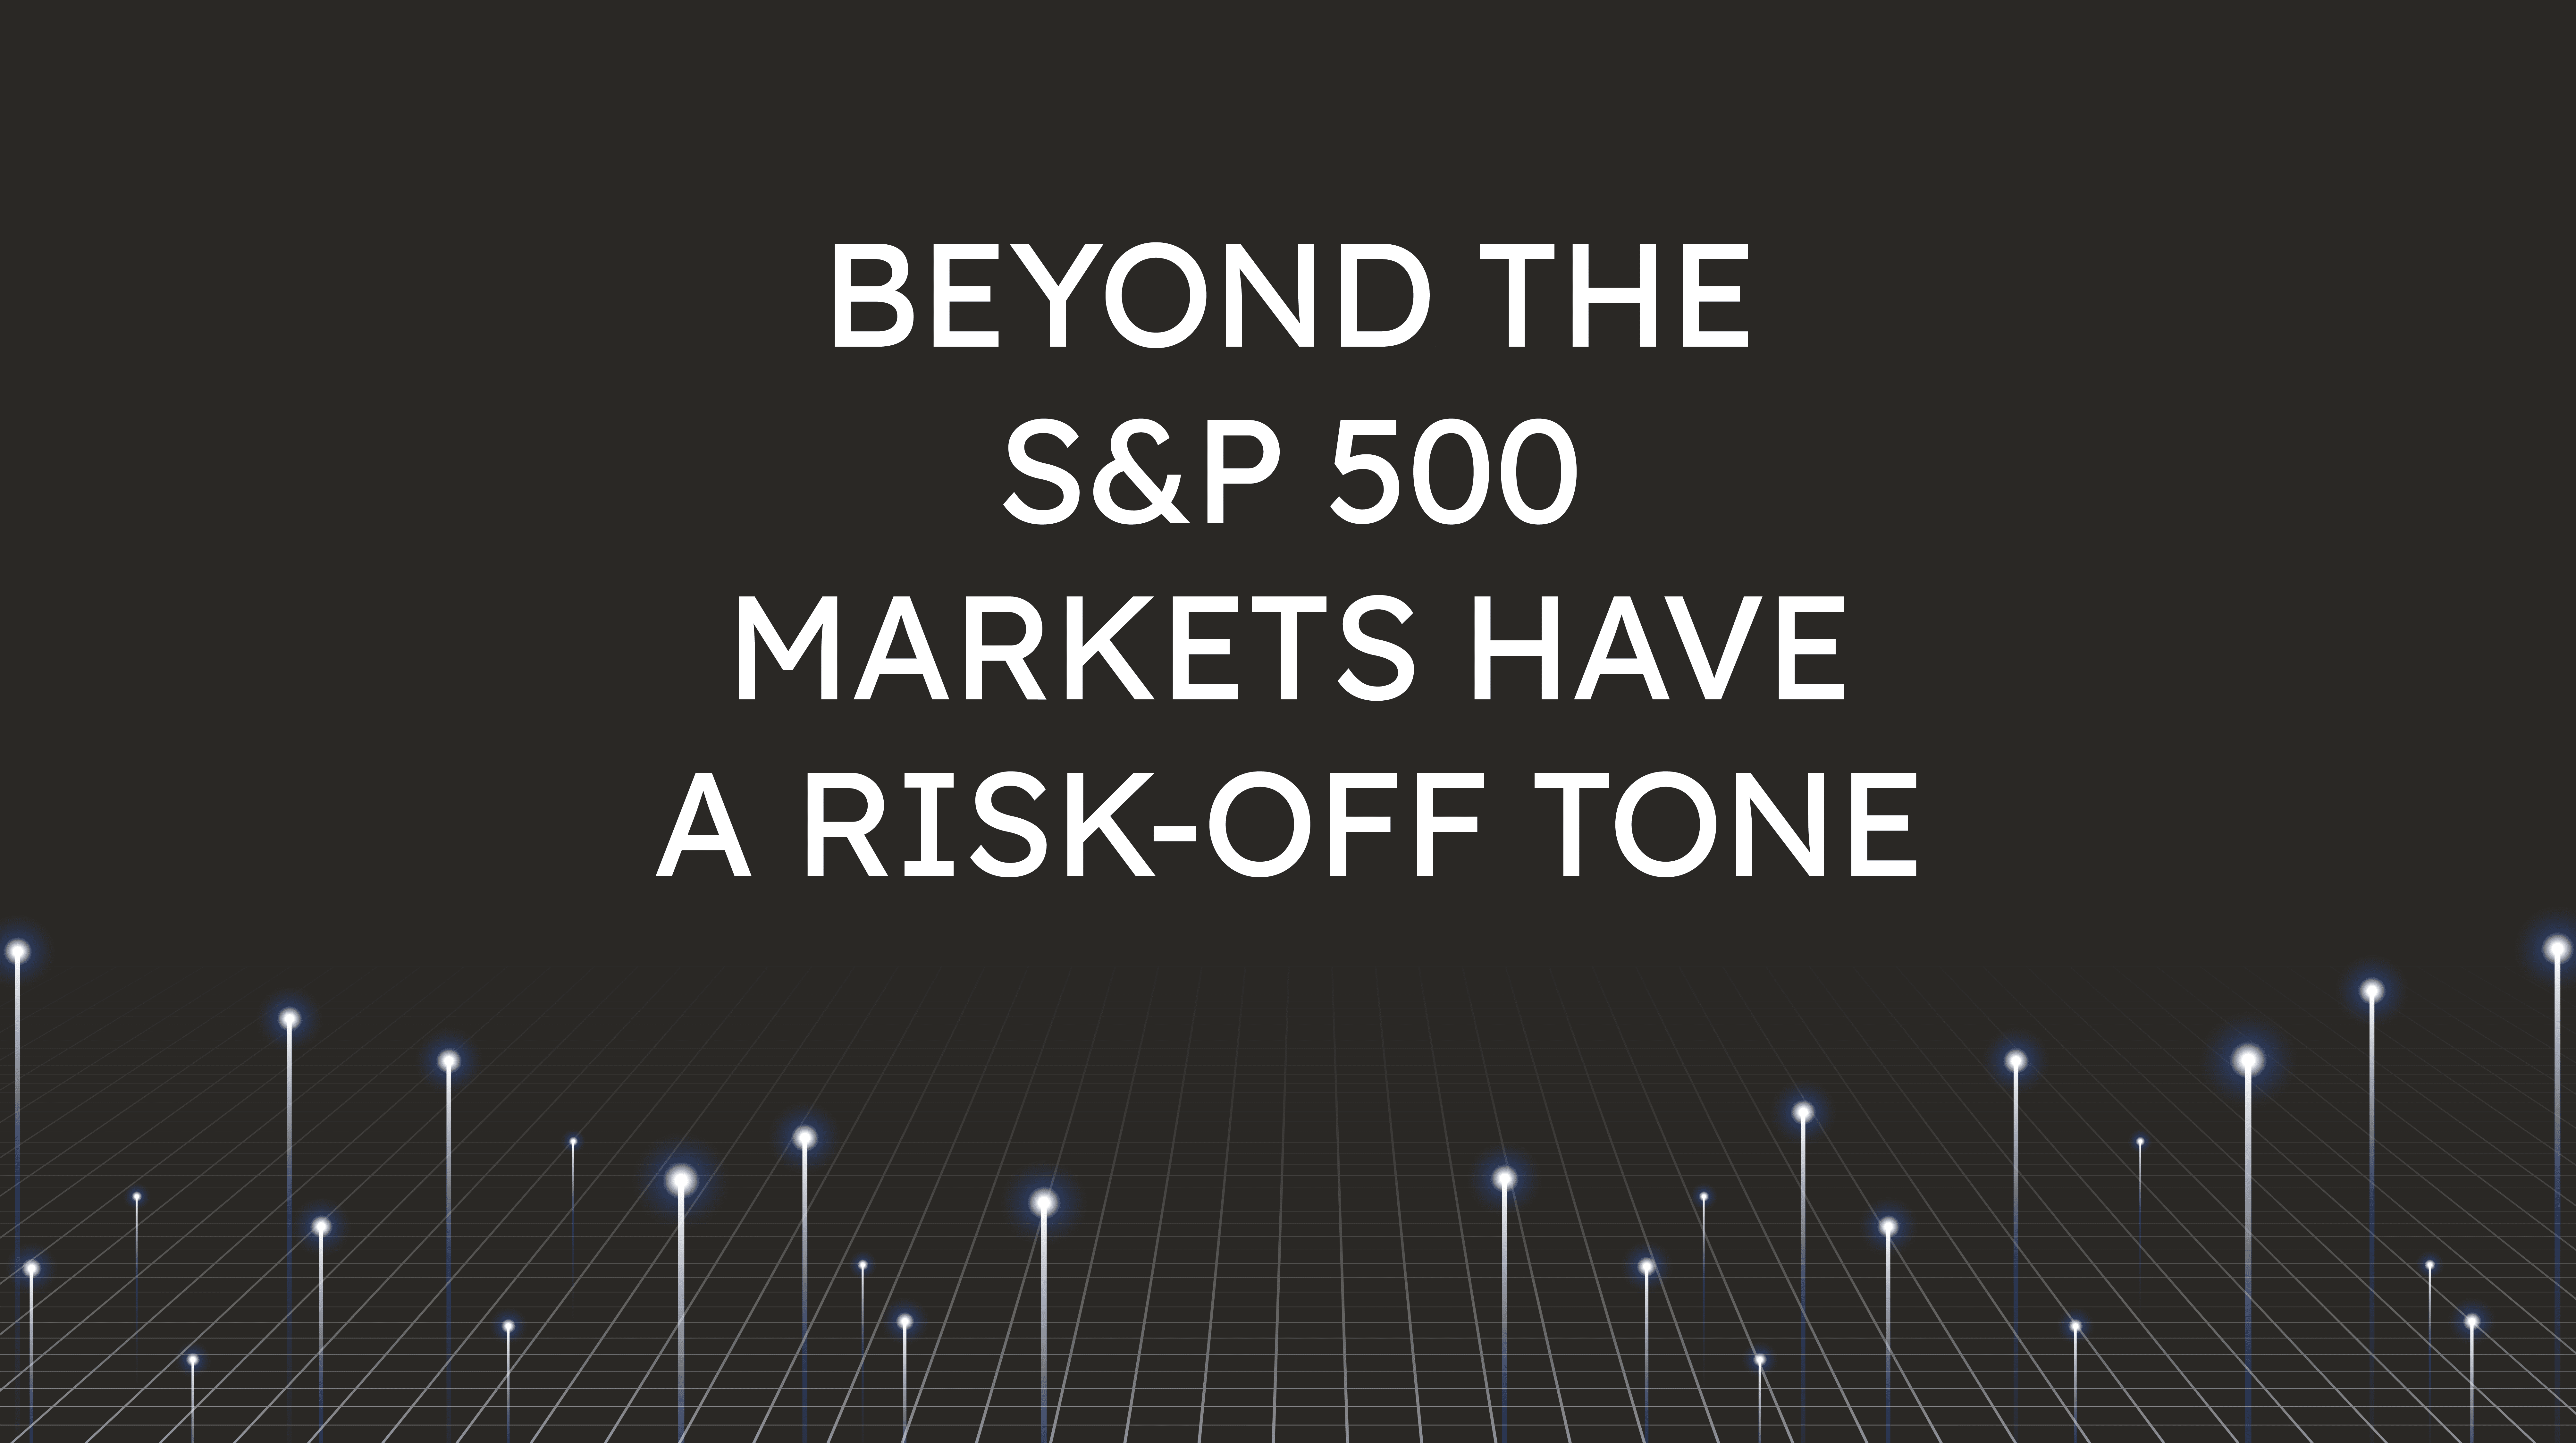 Beyond the S&P 500,  Markets Have a Risk-Off Tone